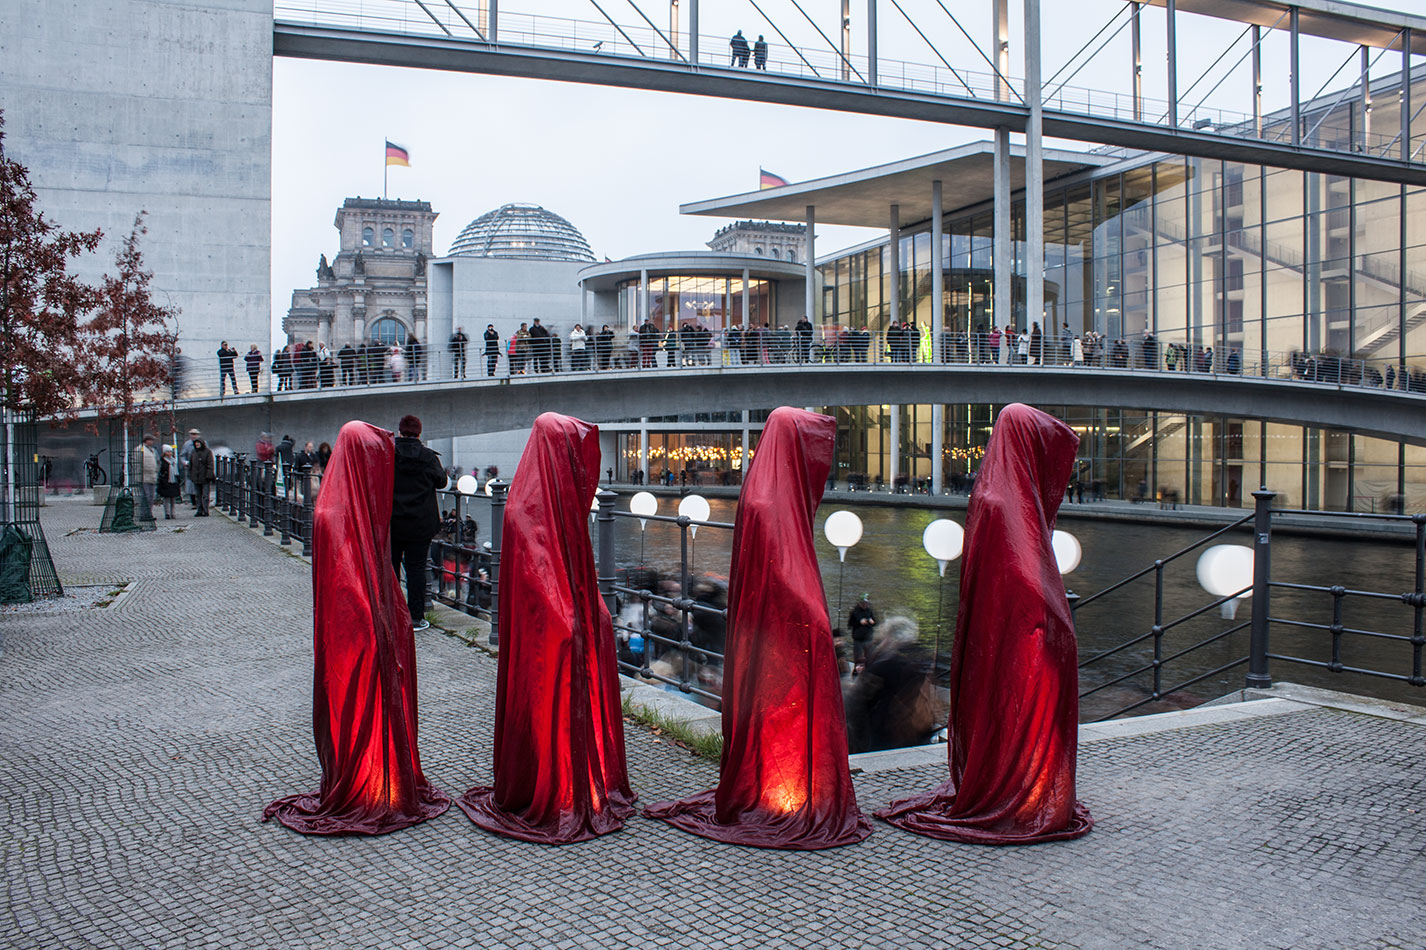 25-years-wallfall-berlin-germany-contemporary-fine-art-show-arts-design-sculpture-public-arts-arte-antique-guardians-of-time-manfred-kili-kielnhofer-4533